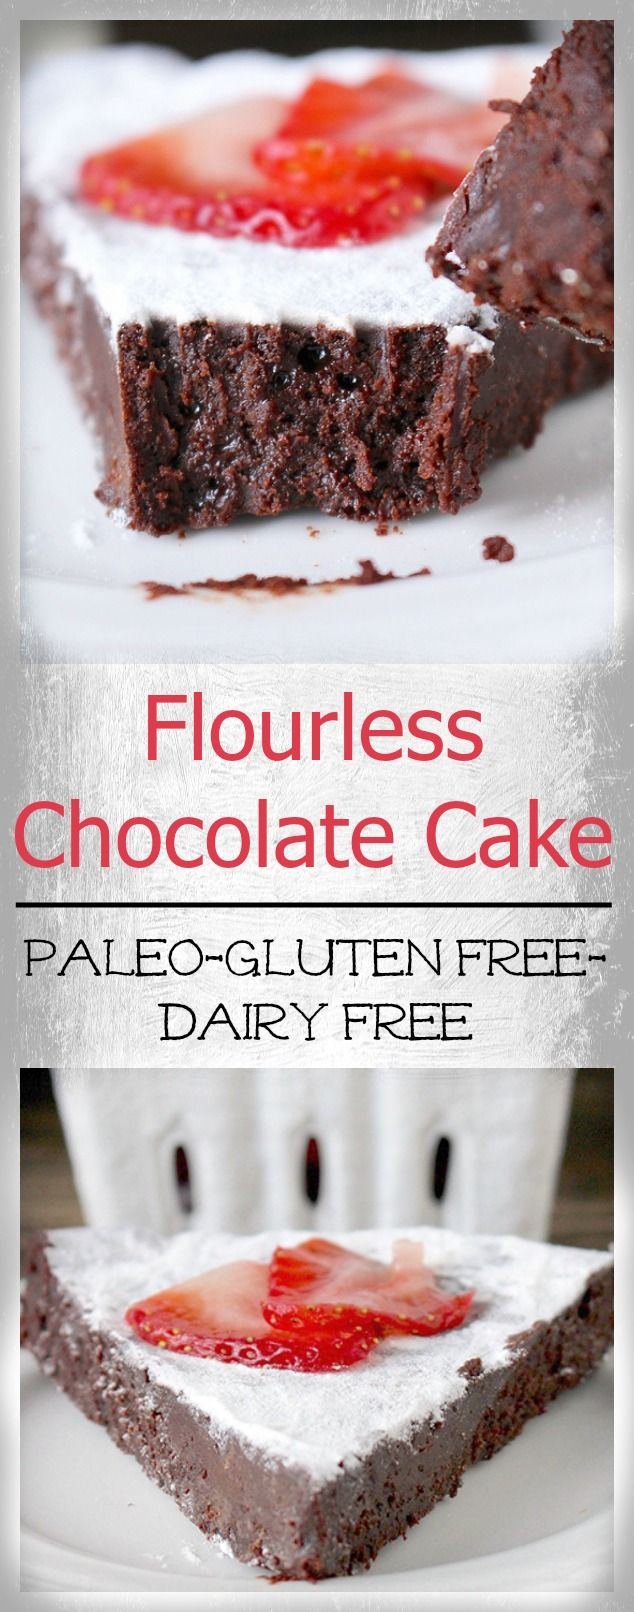 Paleo Flourless Chocolate Cake- 7 ingredients and 30 minutes is all it takes for this delicious cake! Gluten free, dairy free, and refined sugar free.